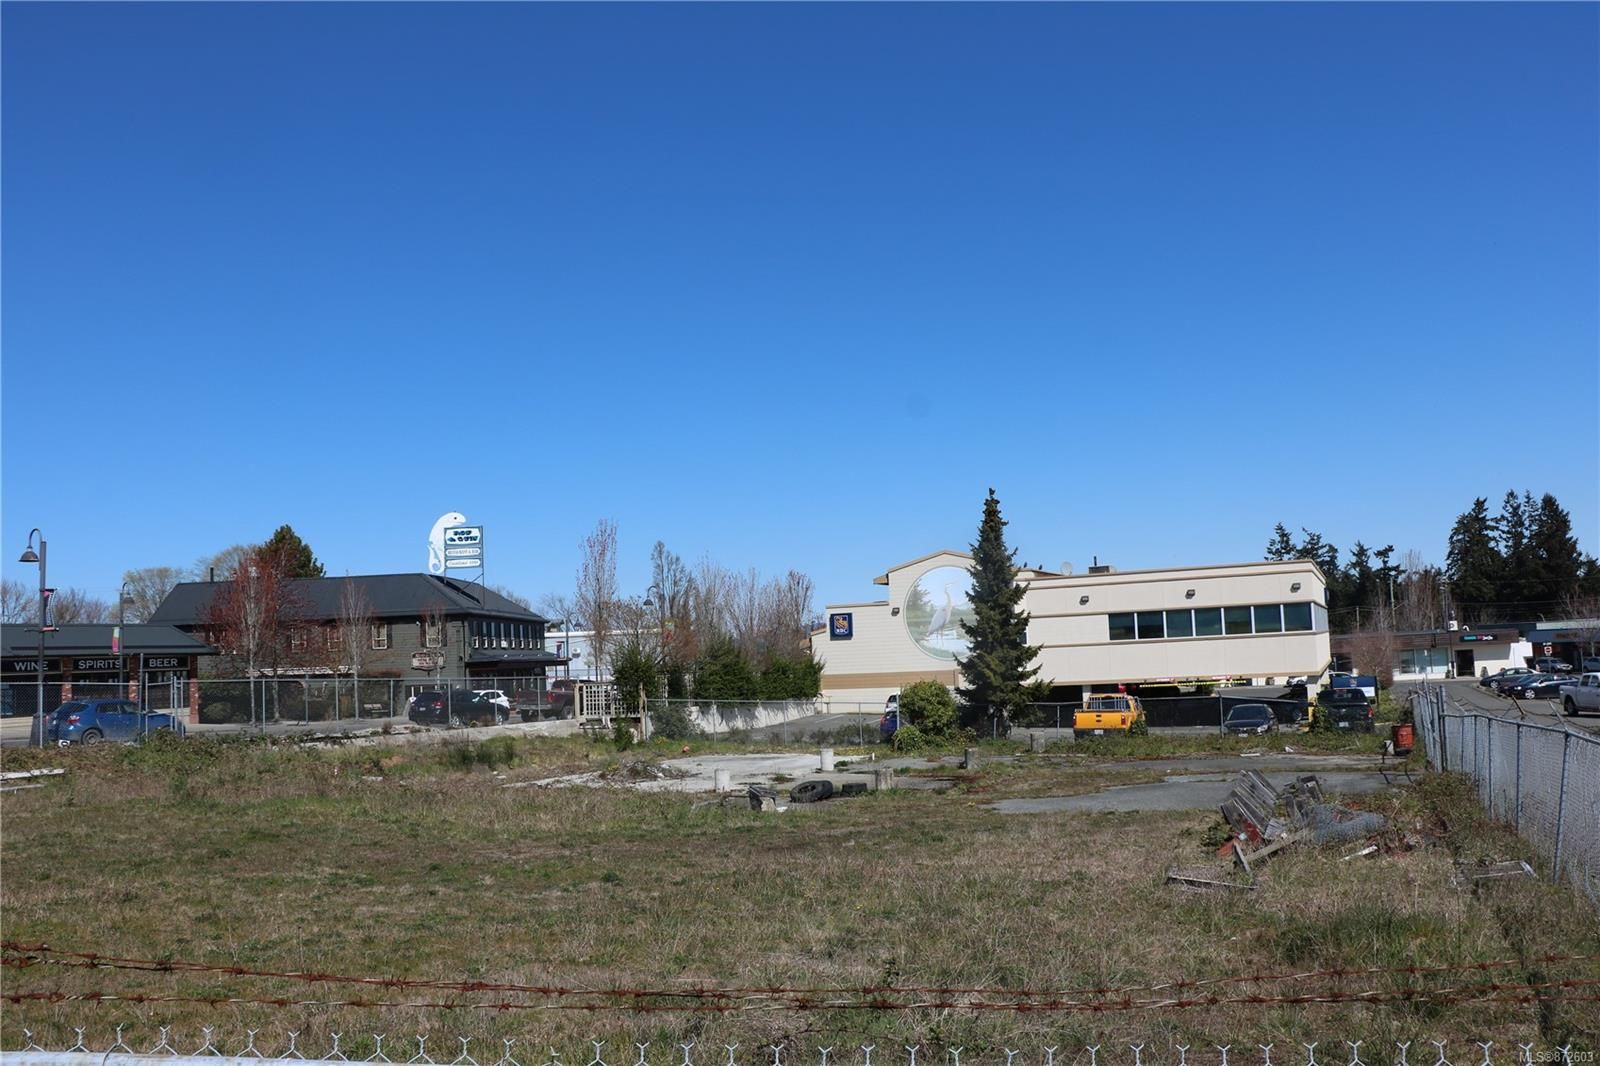 Main Photo: 164 Alberni Hwy in : PQ Parksville Unimproved Land for sale (Parksville/Qualicum)  : MLS®# 872603